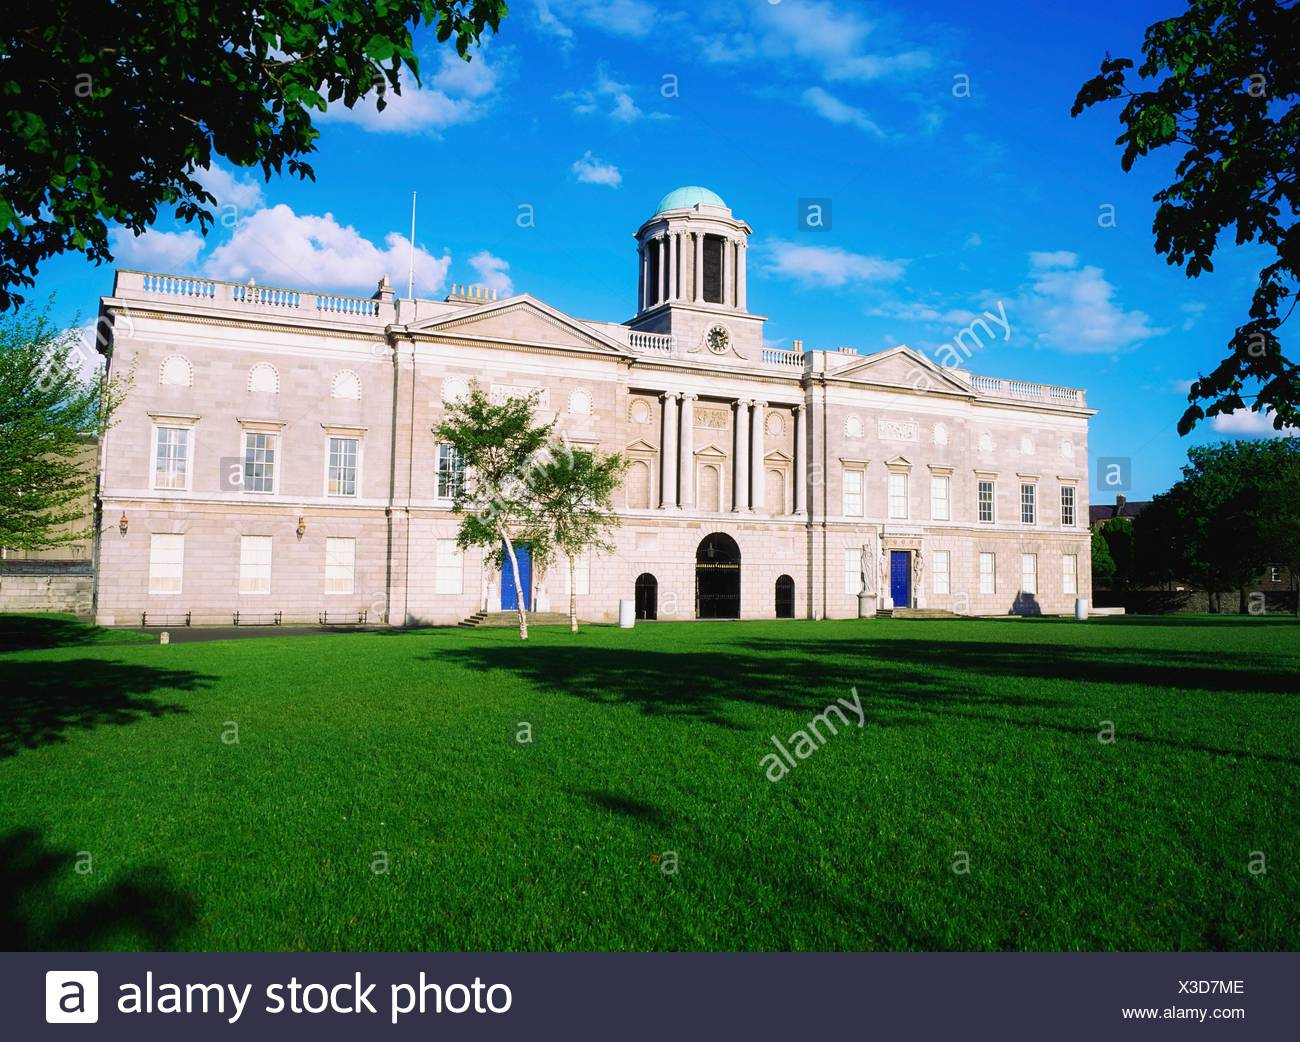 King's Inns, Dublin, Ireland; Exterior Of Institution Of Law And Justice - Stock Image